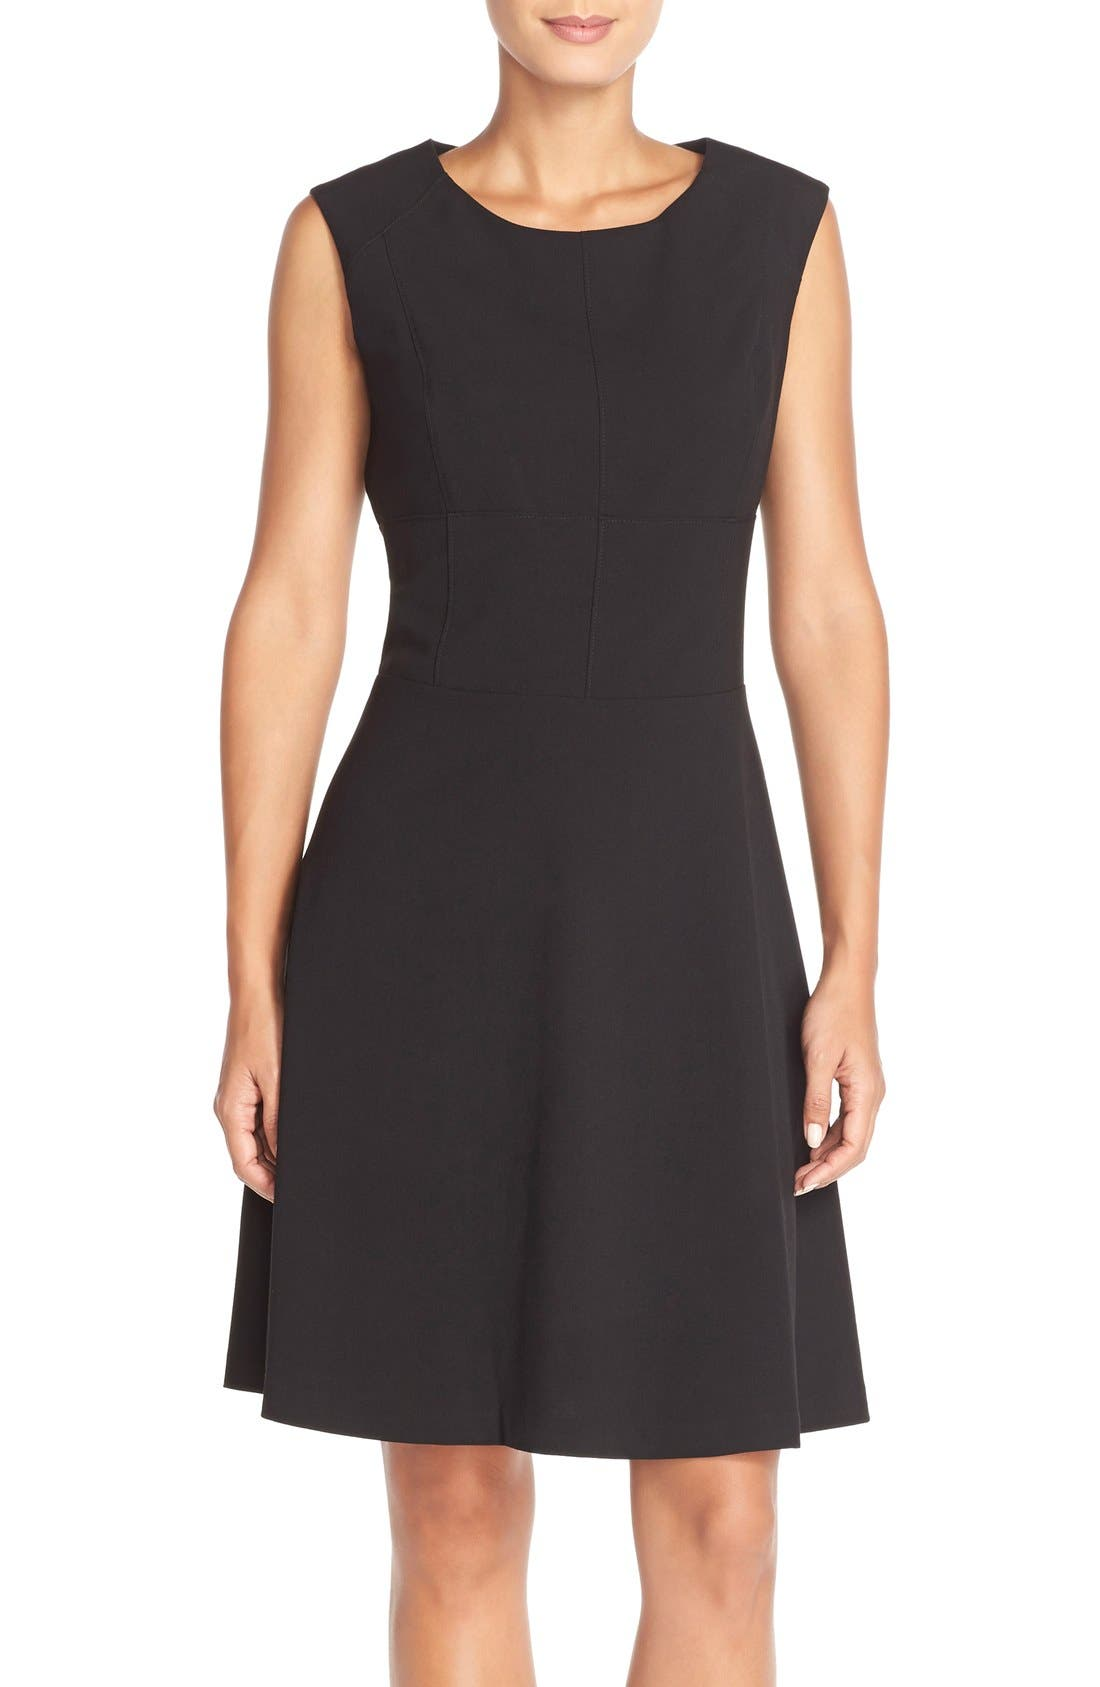 Main Image - Marc New York 'Lux' Stretch Fit & Flare Dress